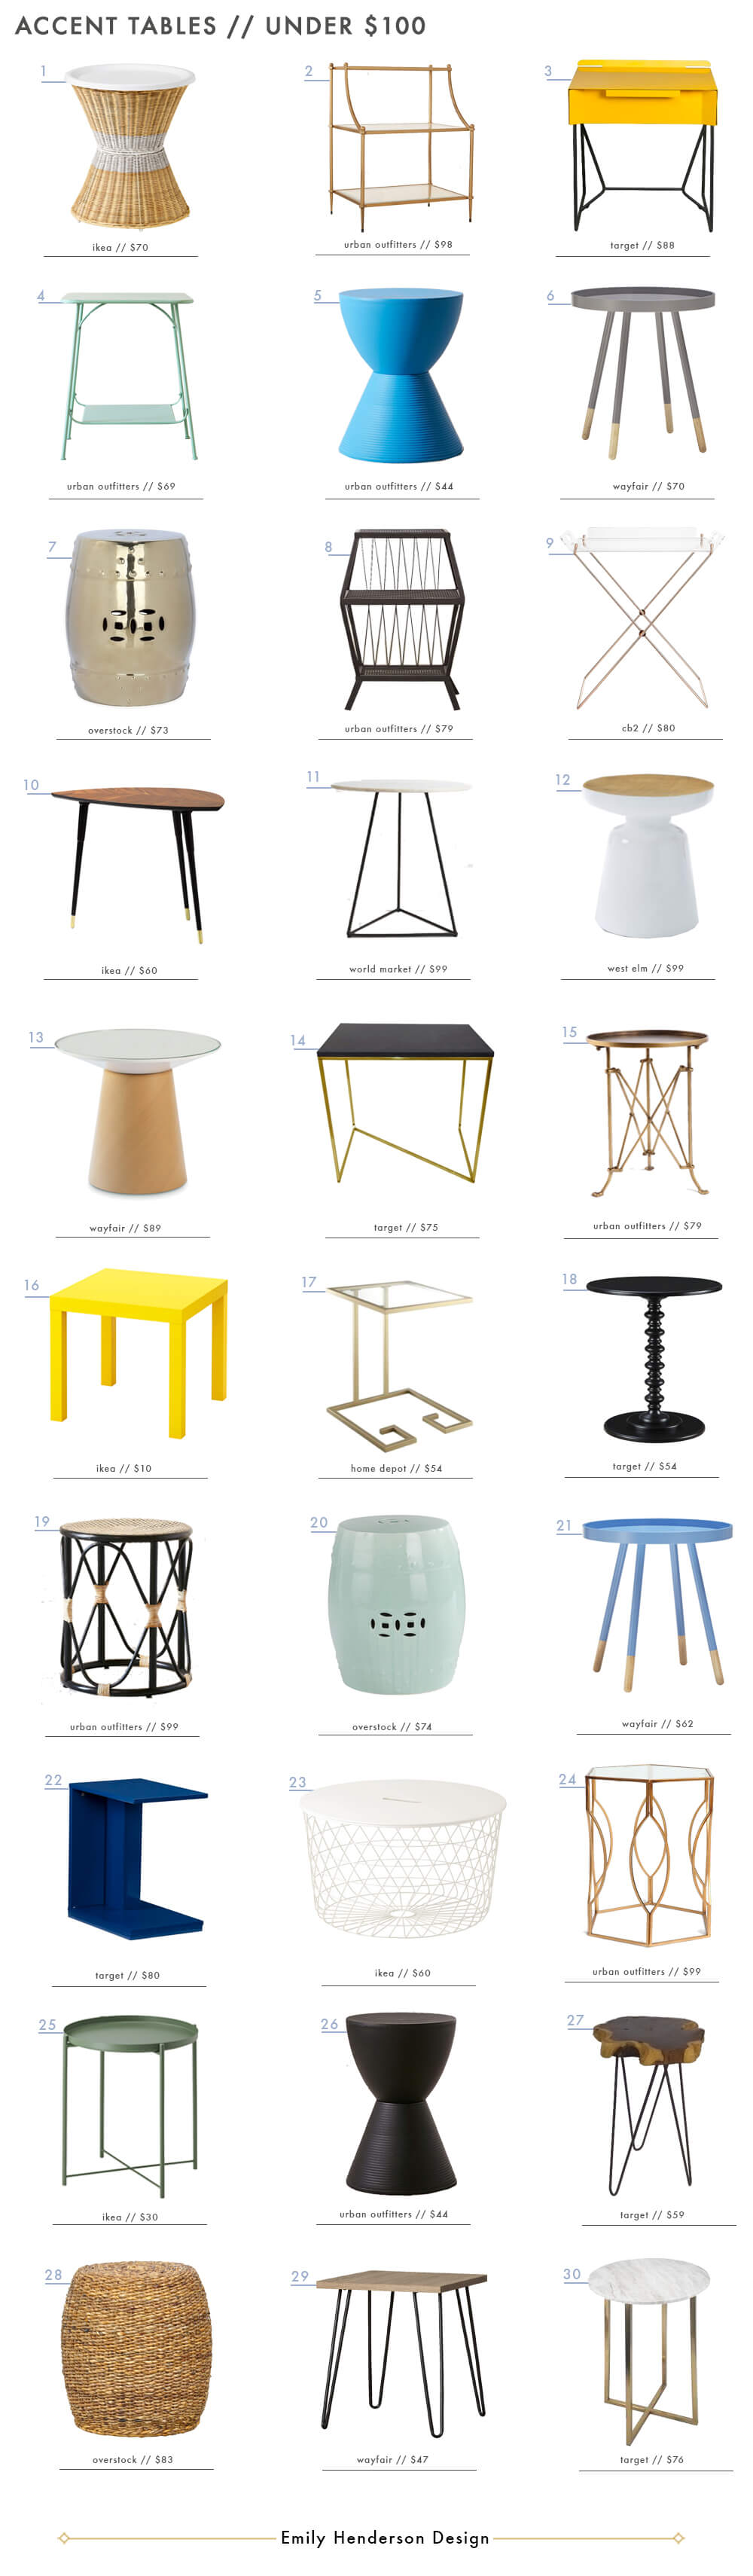 accent tables under emily henderson side small brass table apothecary cabinet target pottery barn floor lighting harvest round wood and metal end kmart kids nautical hanging